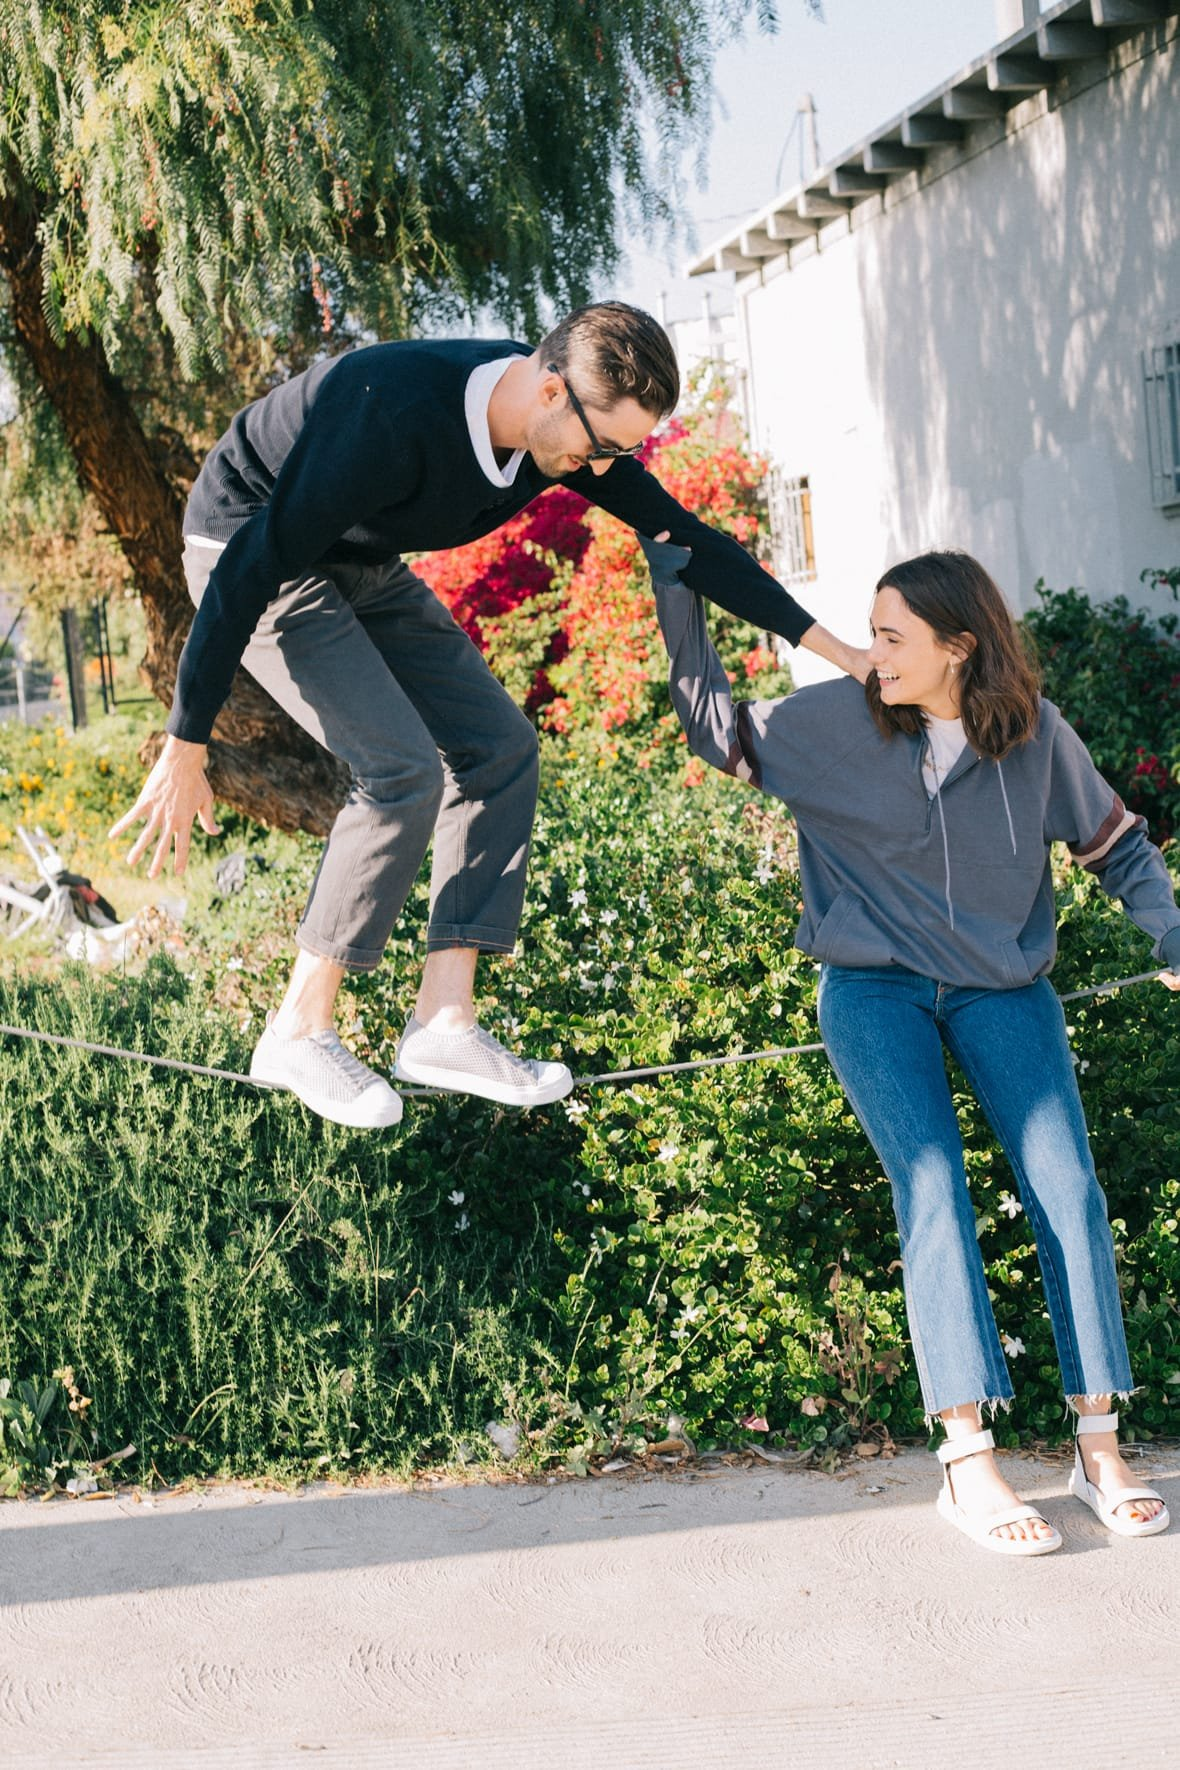 Guy balancing on suspended rope wearing grey sneakers holding shoulder of sitting girl who laughs while wearing white sandals